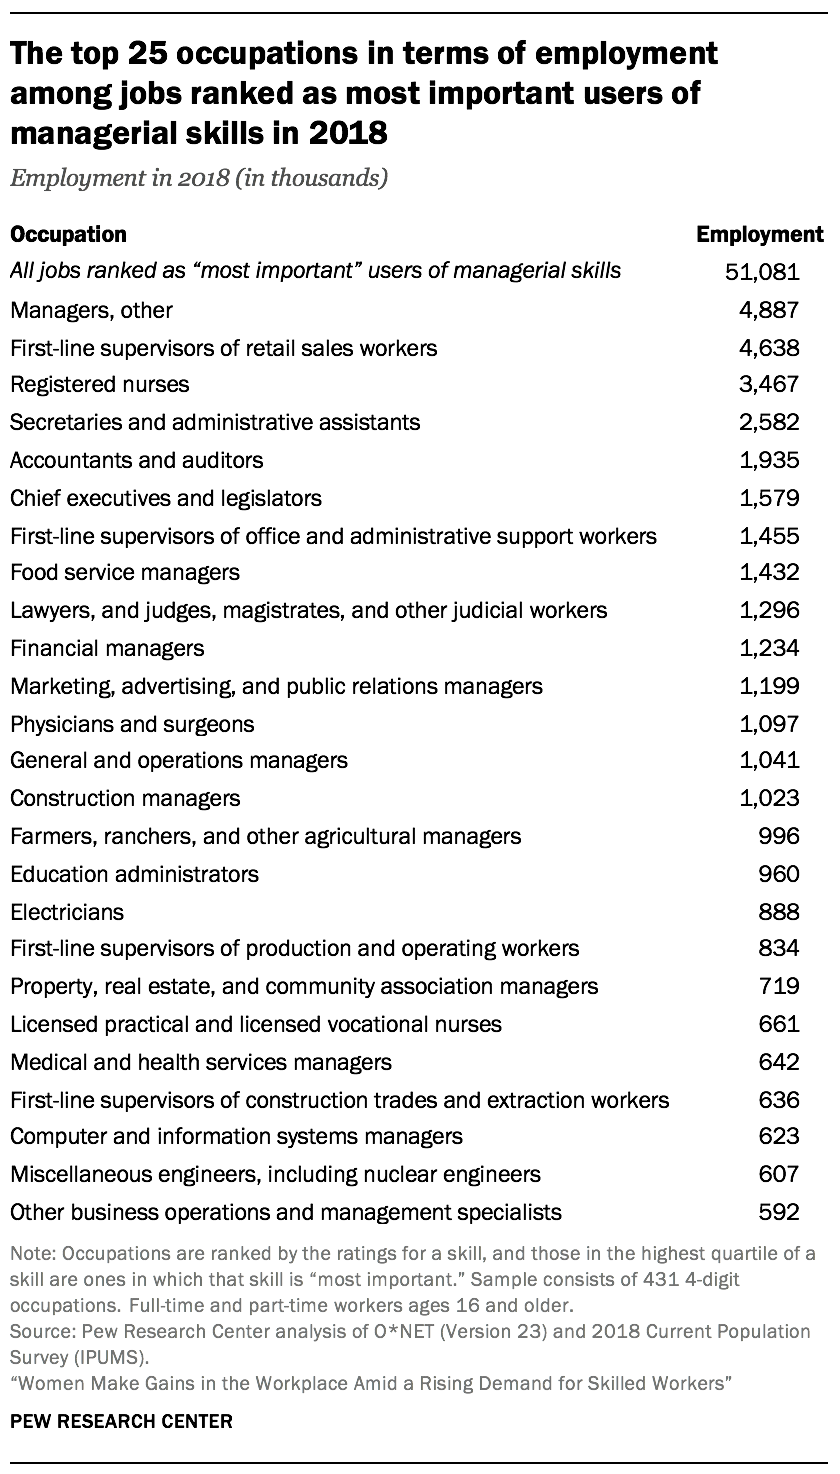 The top 25 occupations in terms of employment among jobs ranked as most important users of managerial skills in 2018